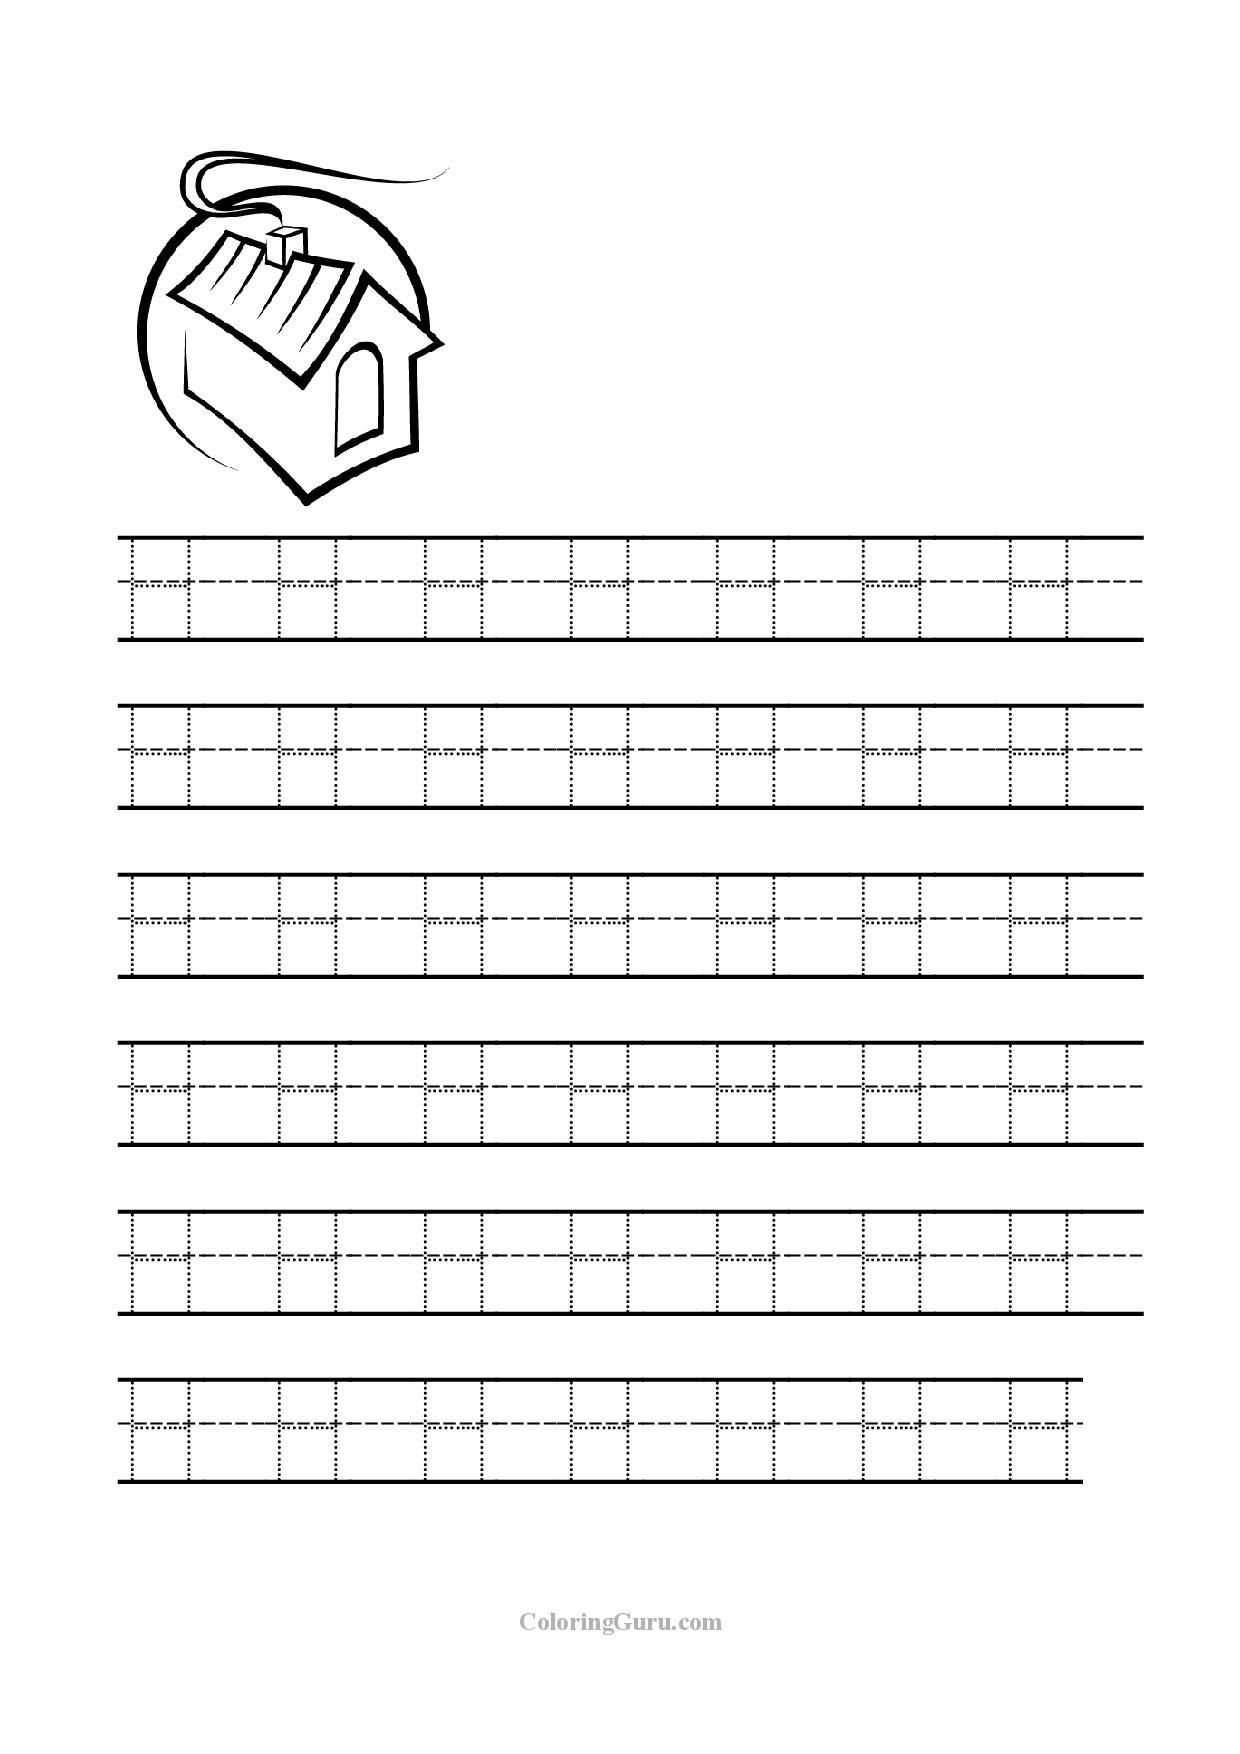 Letter H Tracing Worksheets Worksheets For All pertaining to H Letter Worksheets